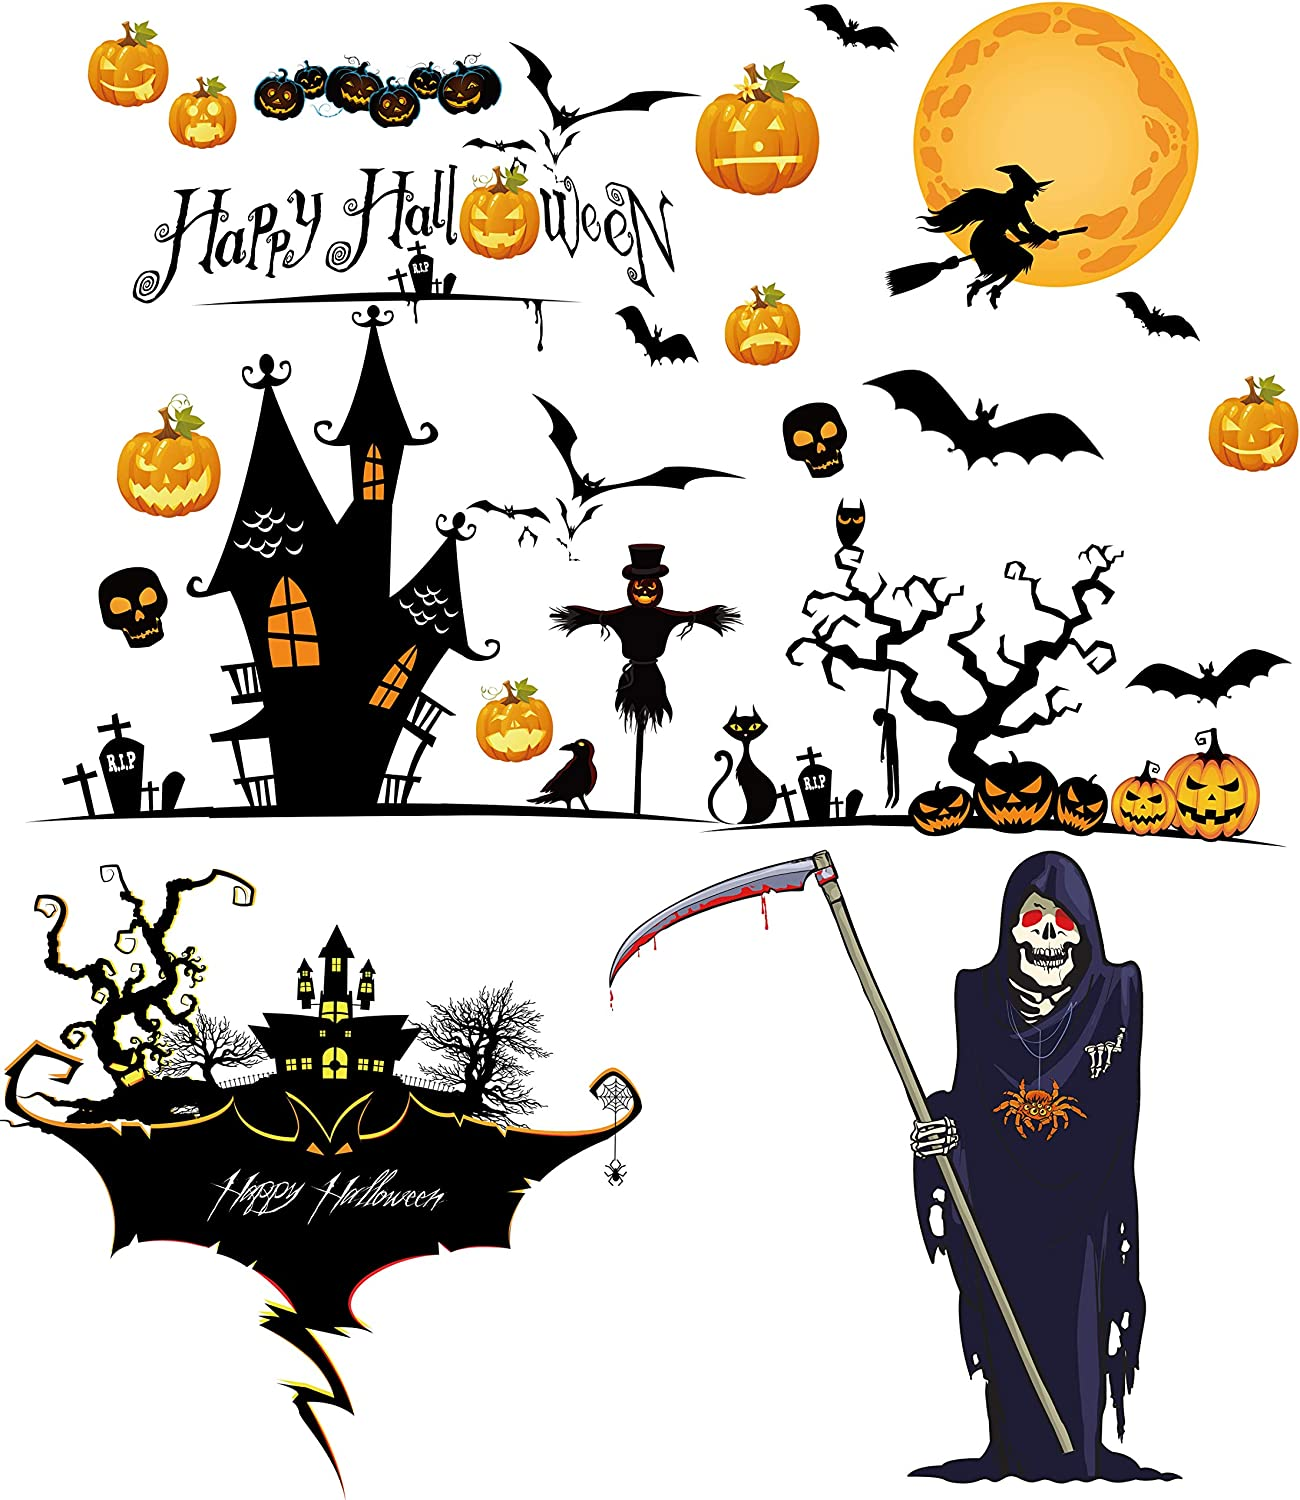 Halloween Window Decorations Stickers 40pcs (3 THEMES). Haunted House, Scary Ghost, Bats, Witch + Pumpkins Decals for Indoor Glass Door + Wall. Home + Office Party Decor Sticker by Decoration Creation